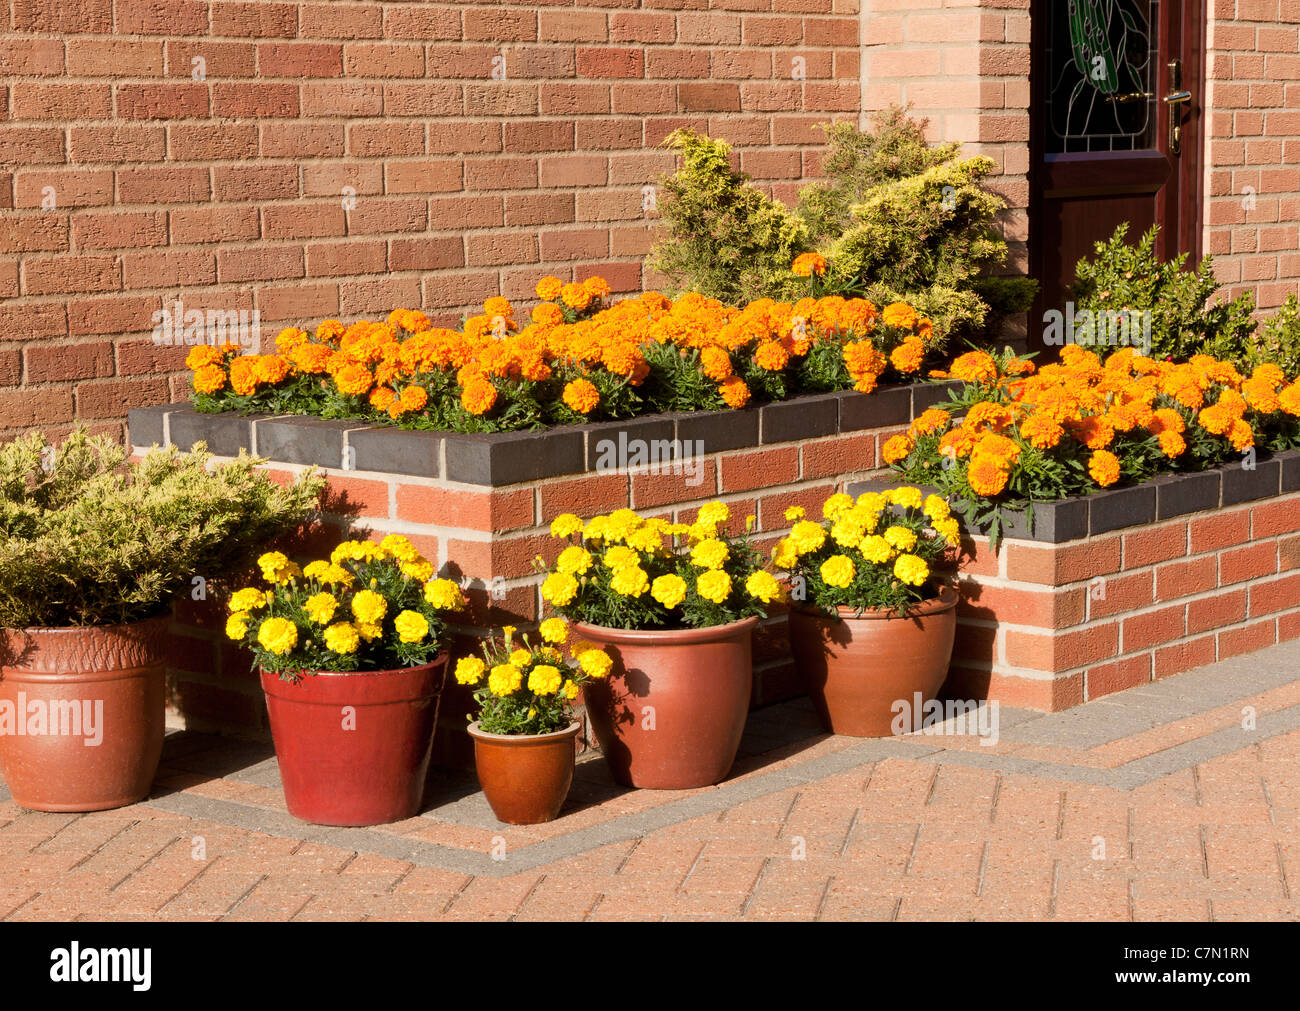 Raised Flower Bed on a Patio with Pots - Stock Image